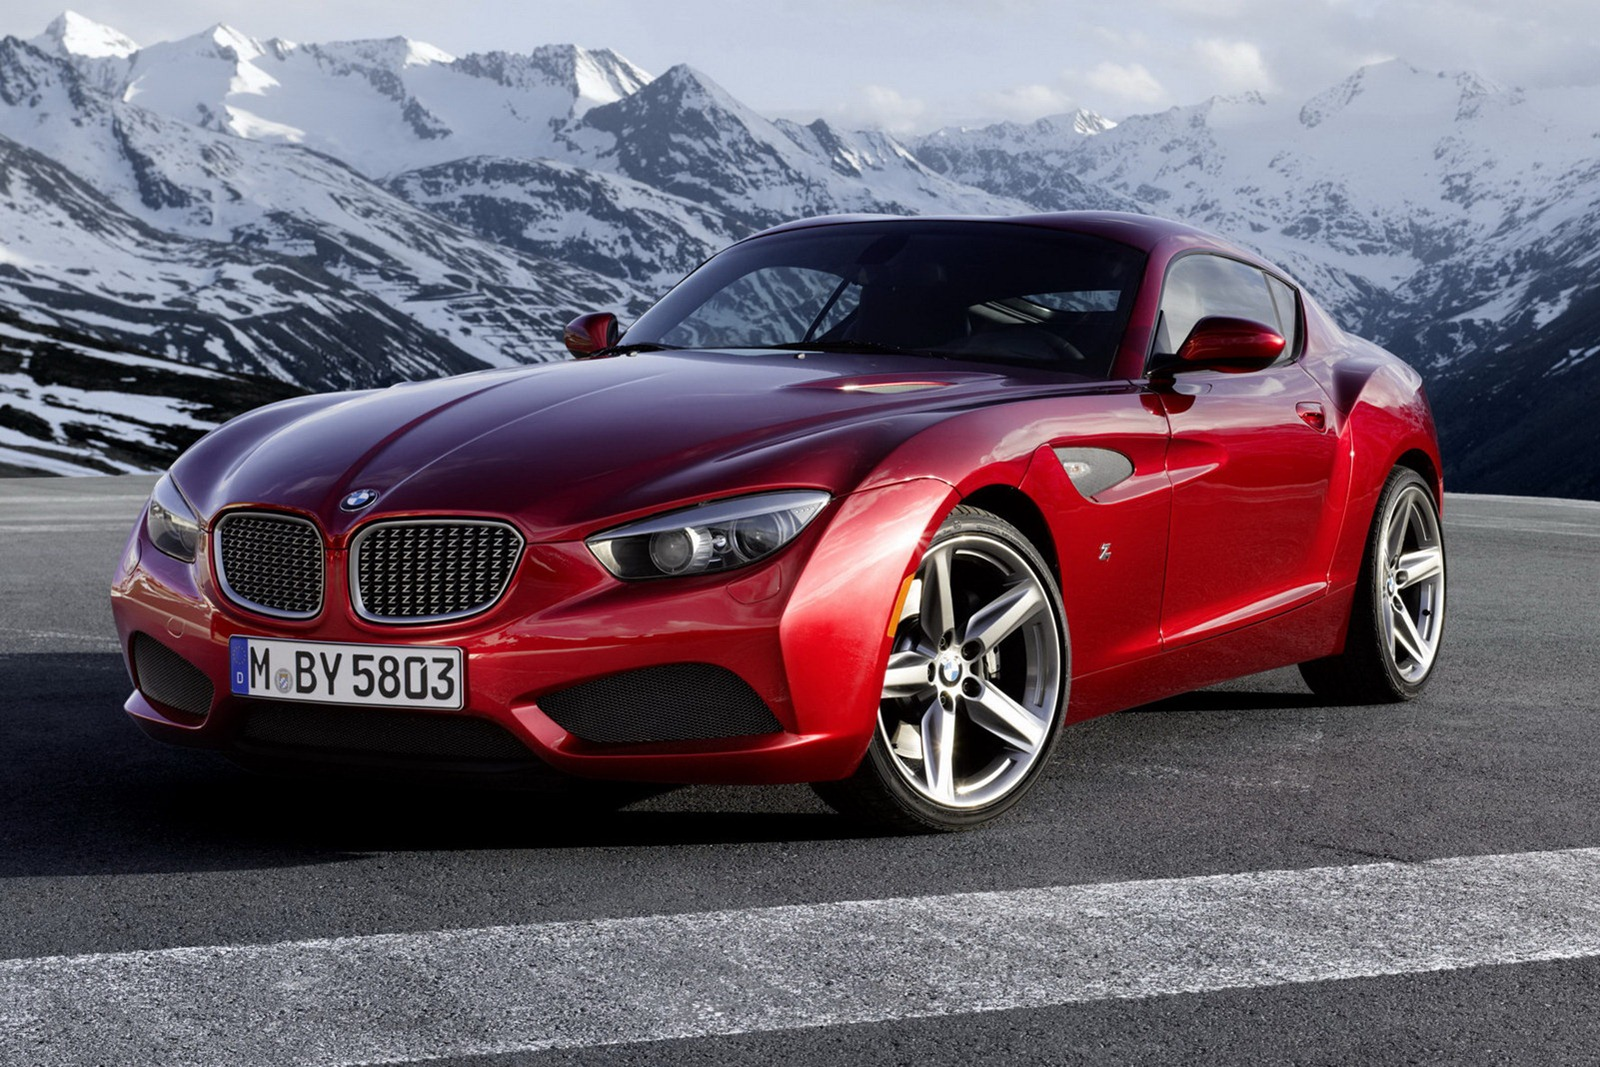 bmw z4 zagato coupe pictures and details autotribute. Black Bedroom Furniture Sets. Home Design Ideas